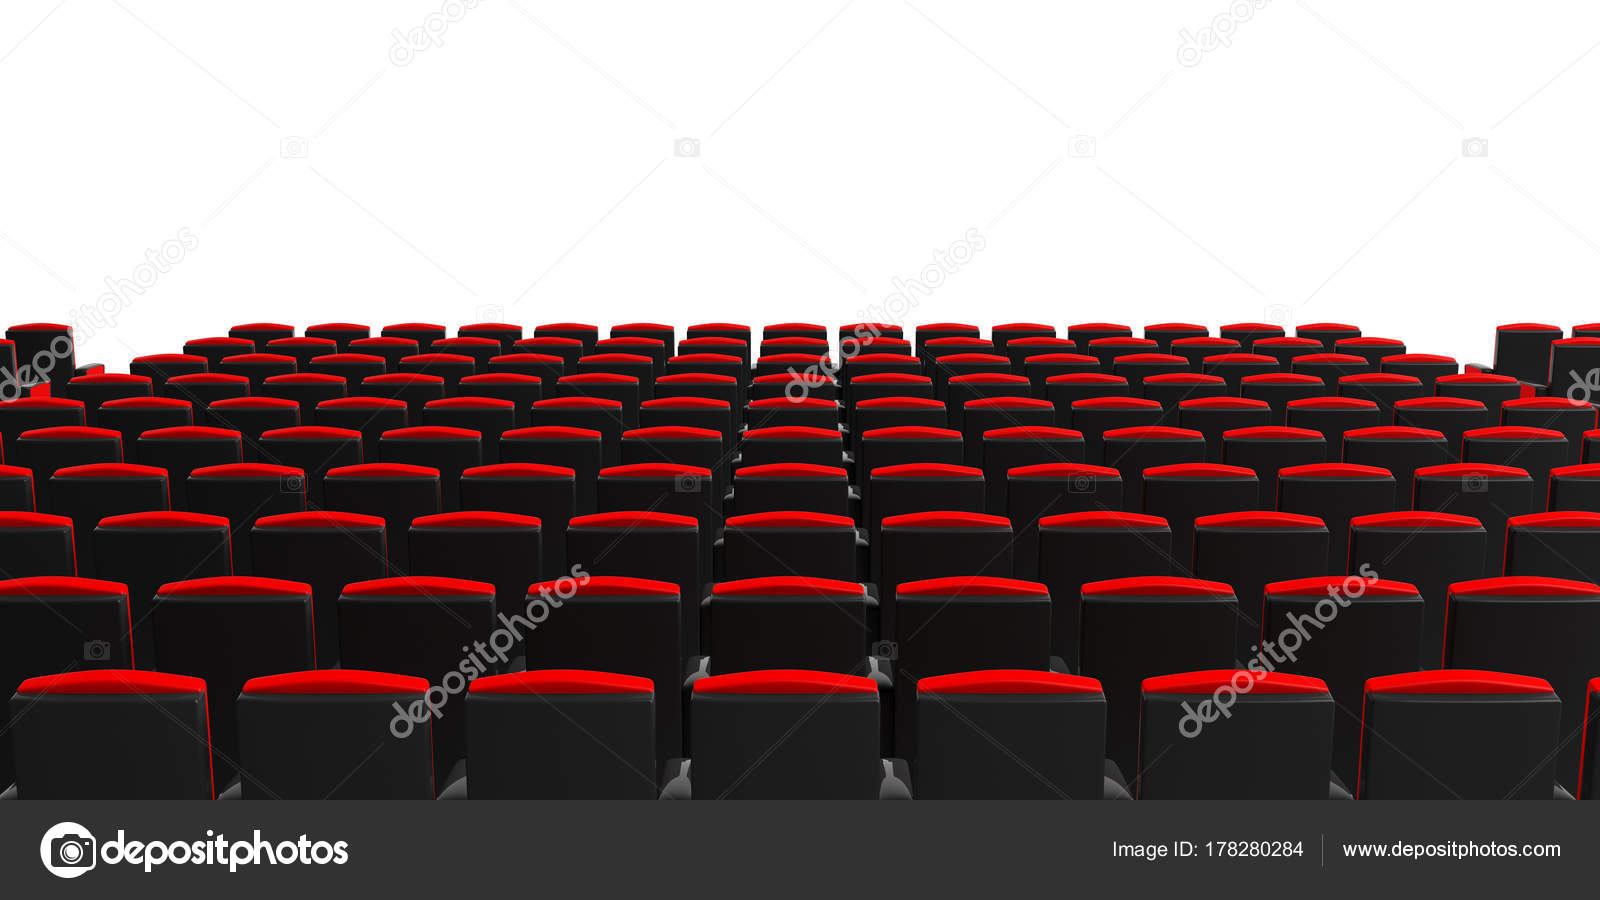 Cinema Chairs On White Background View From Behind Copyspace 3d Illustration Stock Photo C Gioiak2 178280284